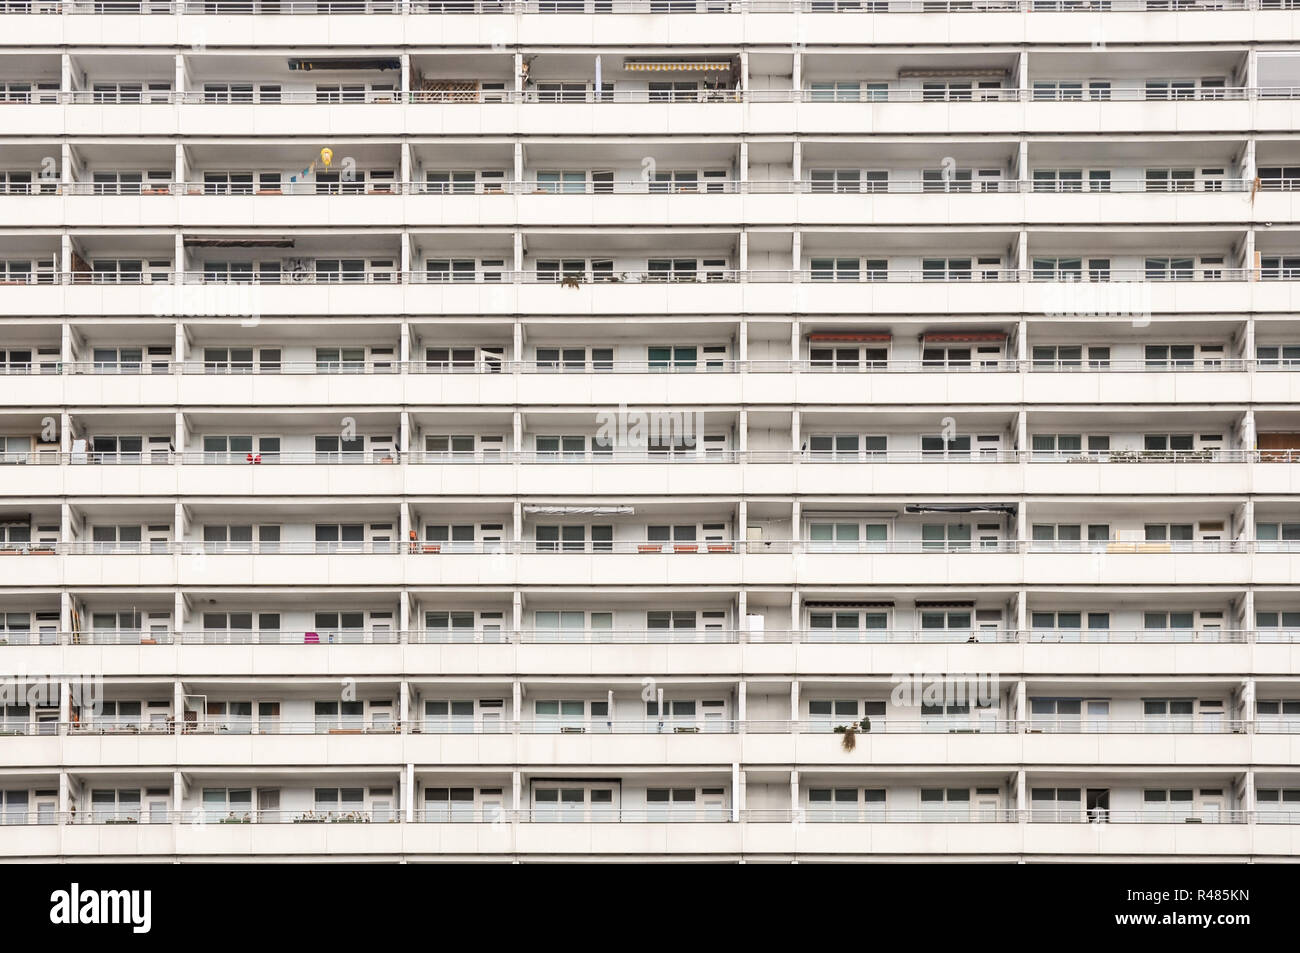 high-rise with apartments and apartments in berlin Stock Photo